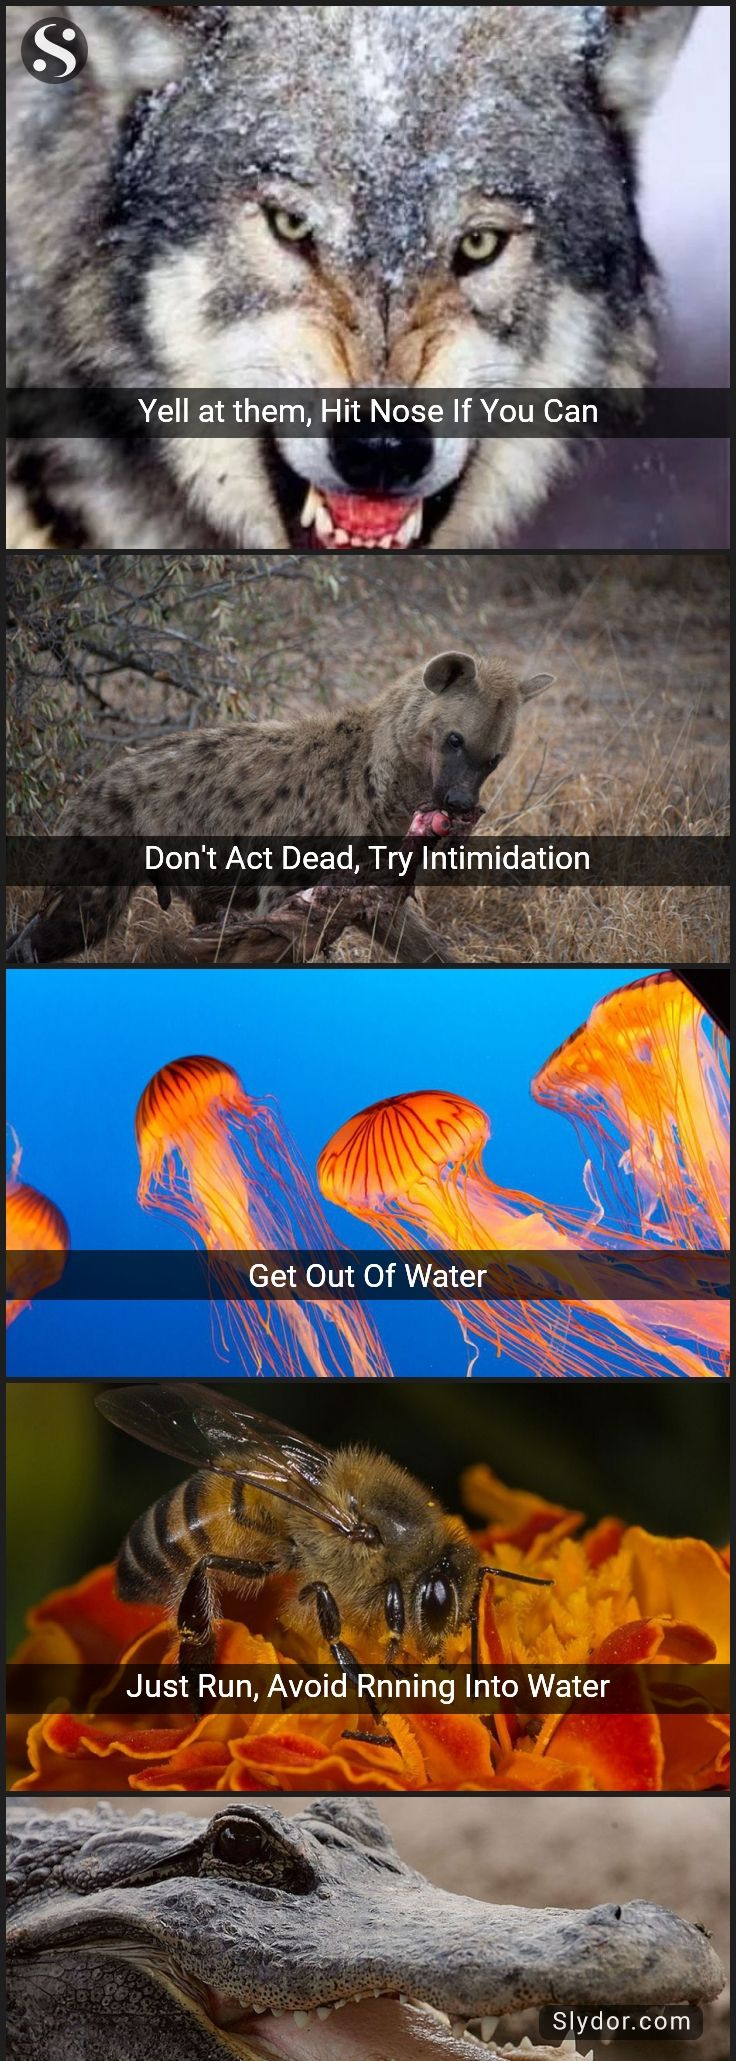 Lifesaving Combat Tips To Survive Wild Animal Attacks